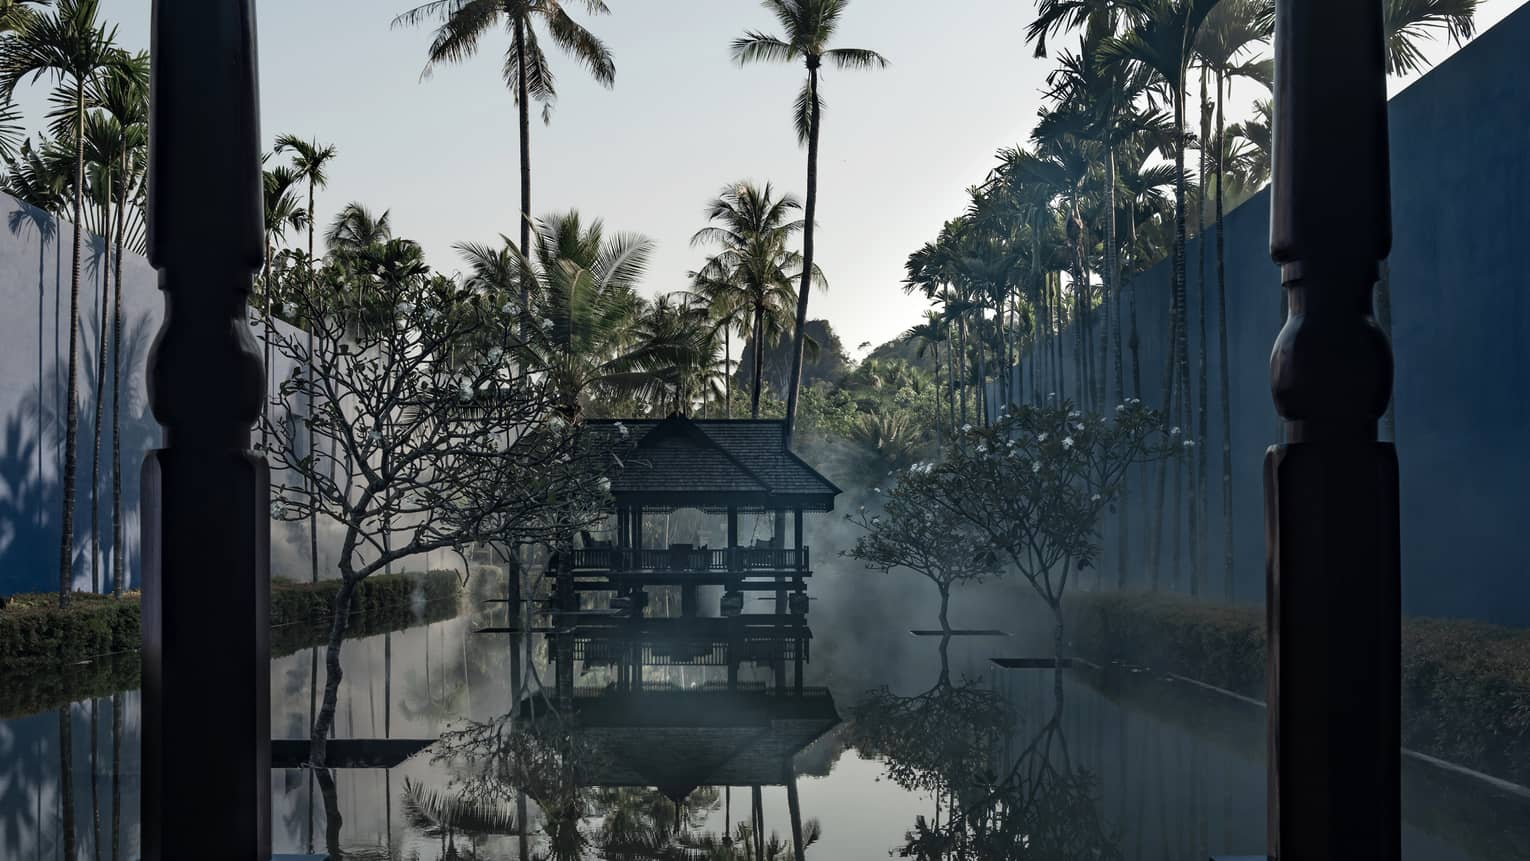 Ilham Pavilion reflection pond at Four Seasons Resort Langkawi